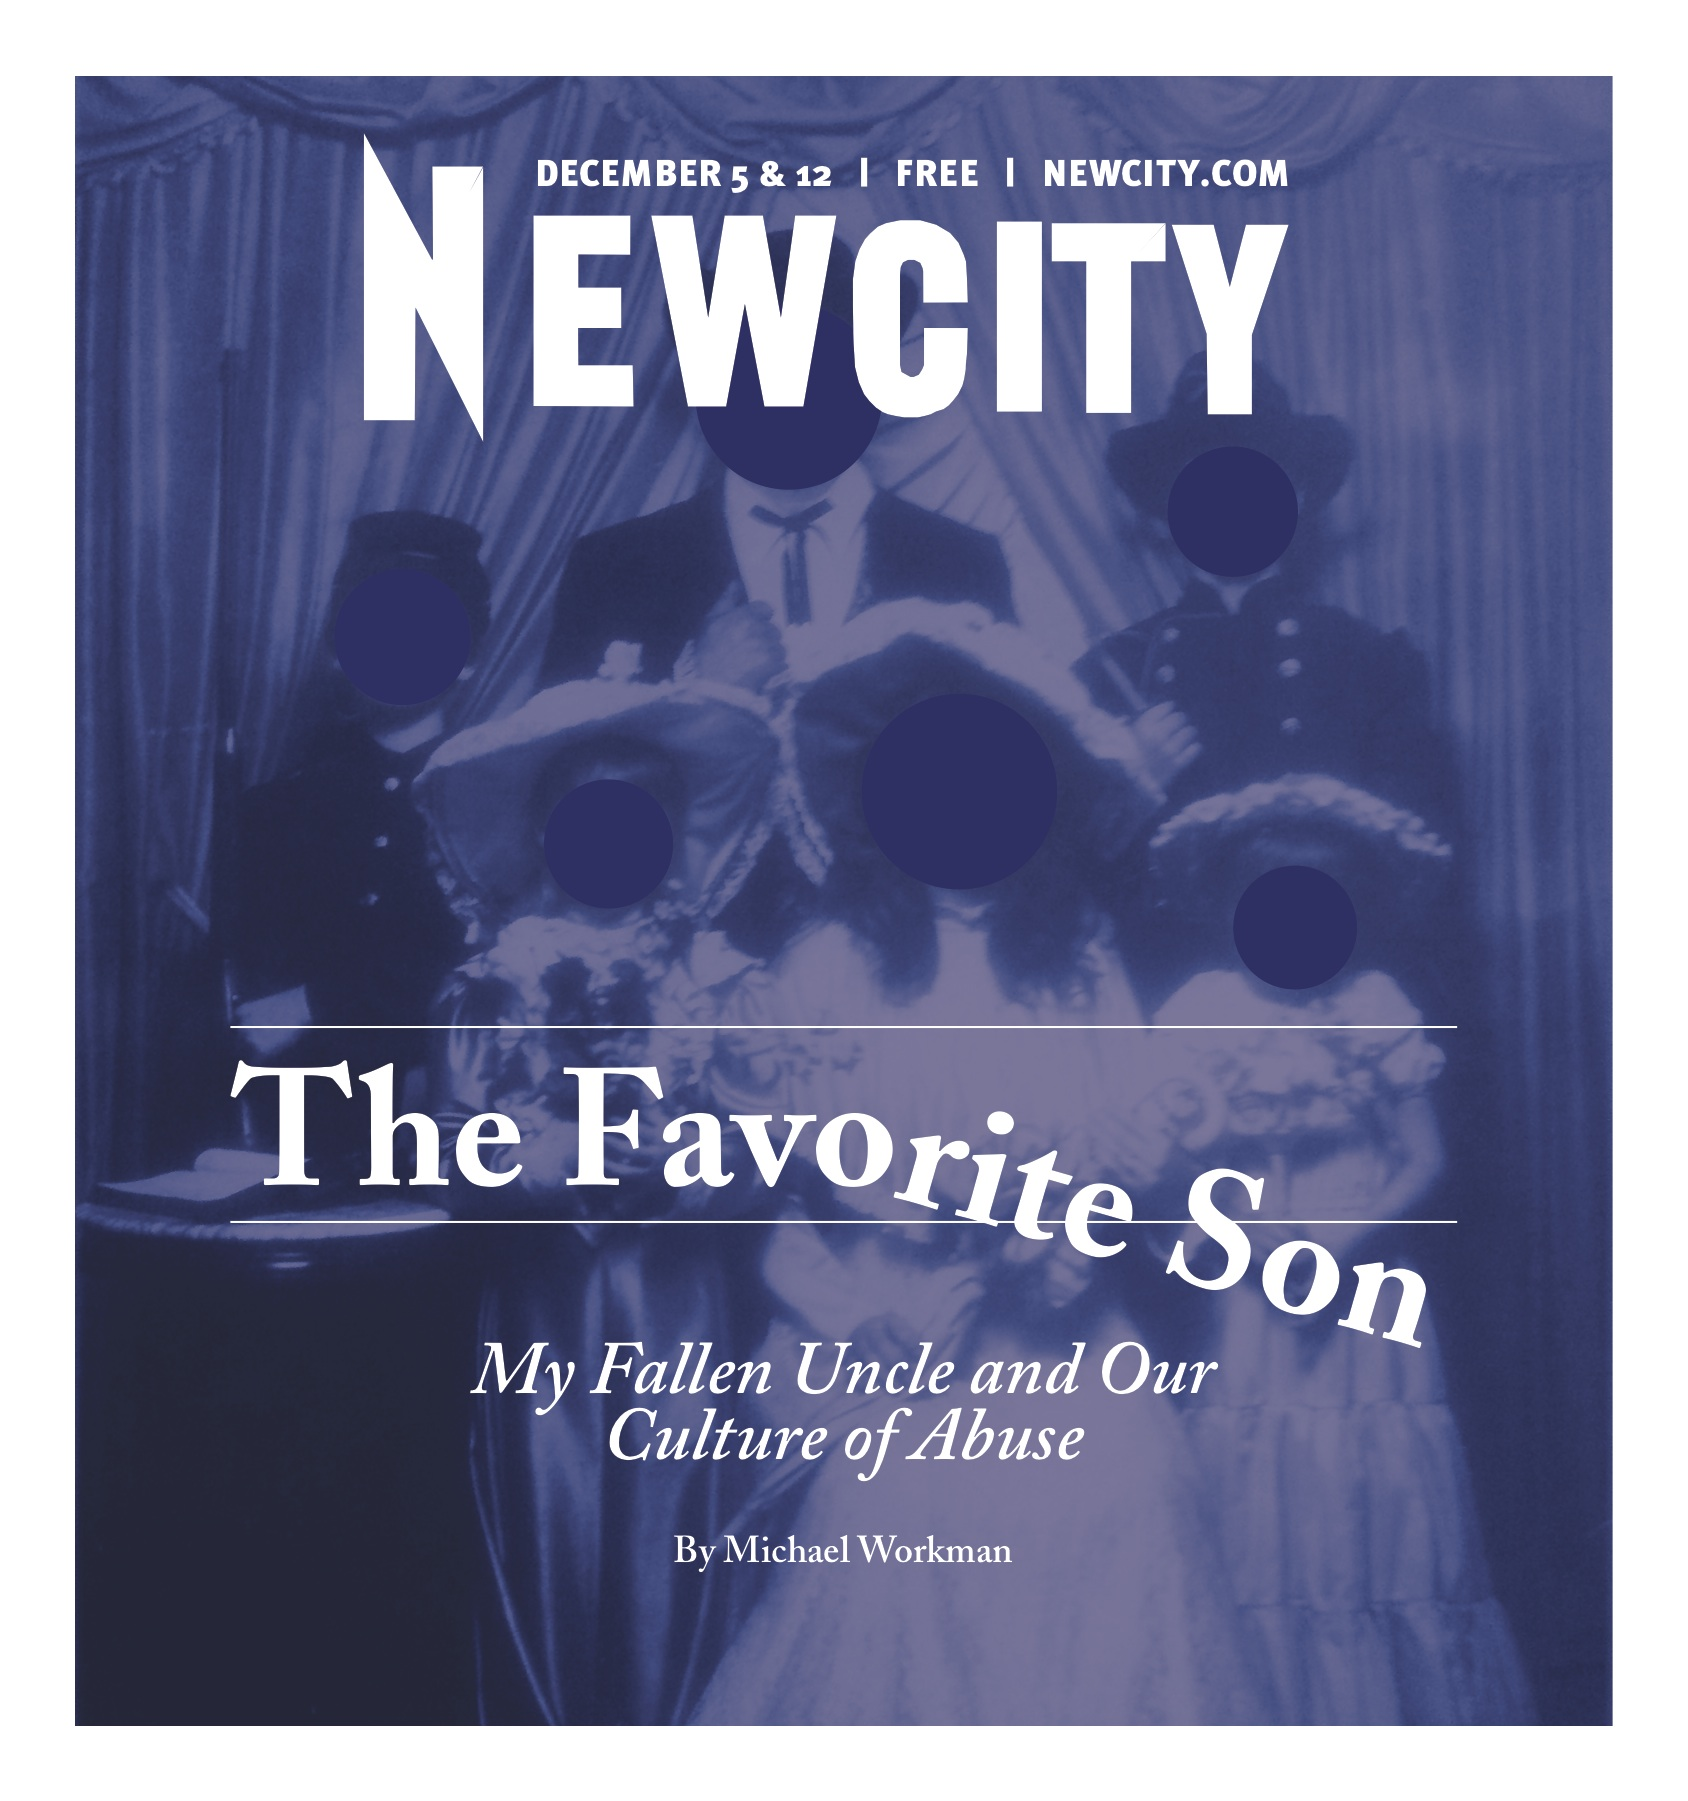 The Favorite Son: A fallen uncle and a culture of abuse